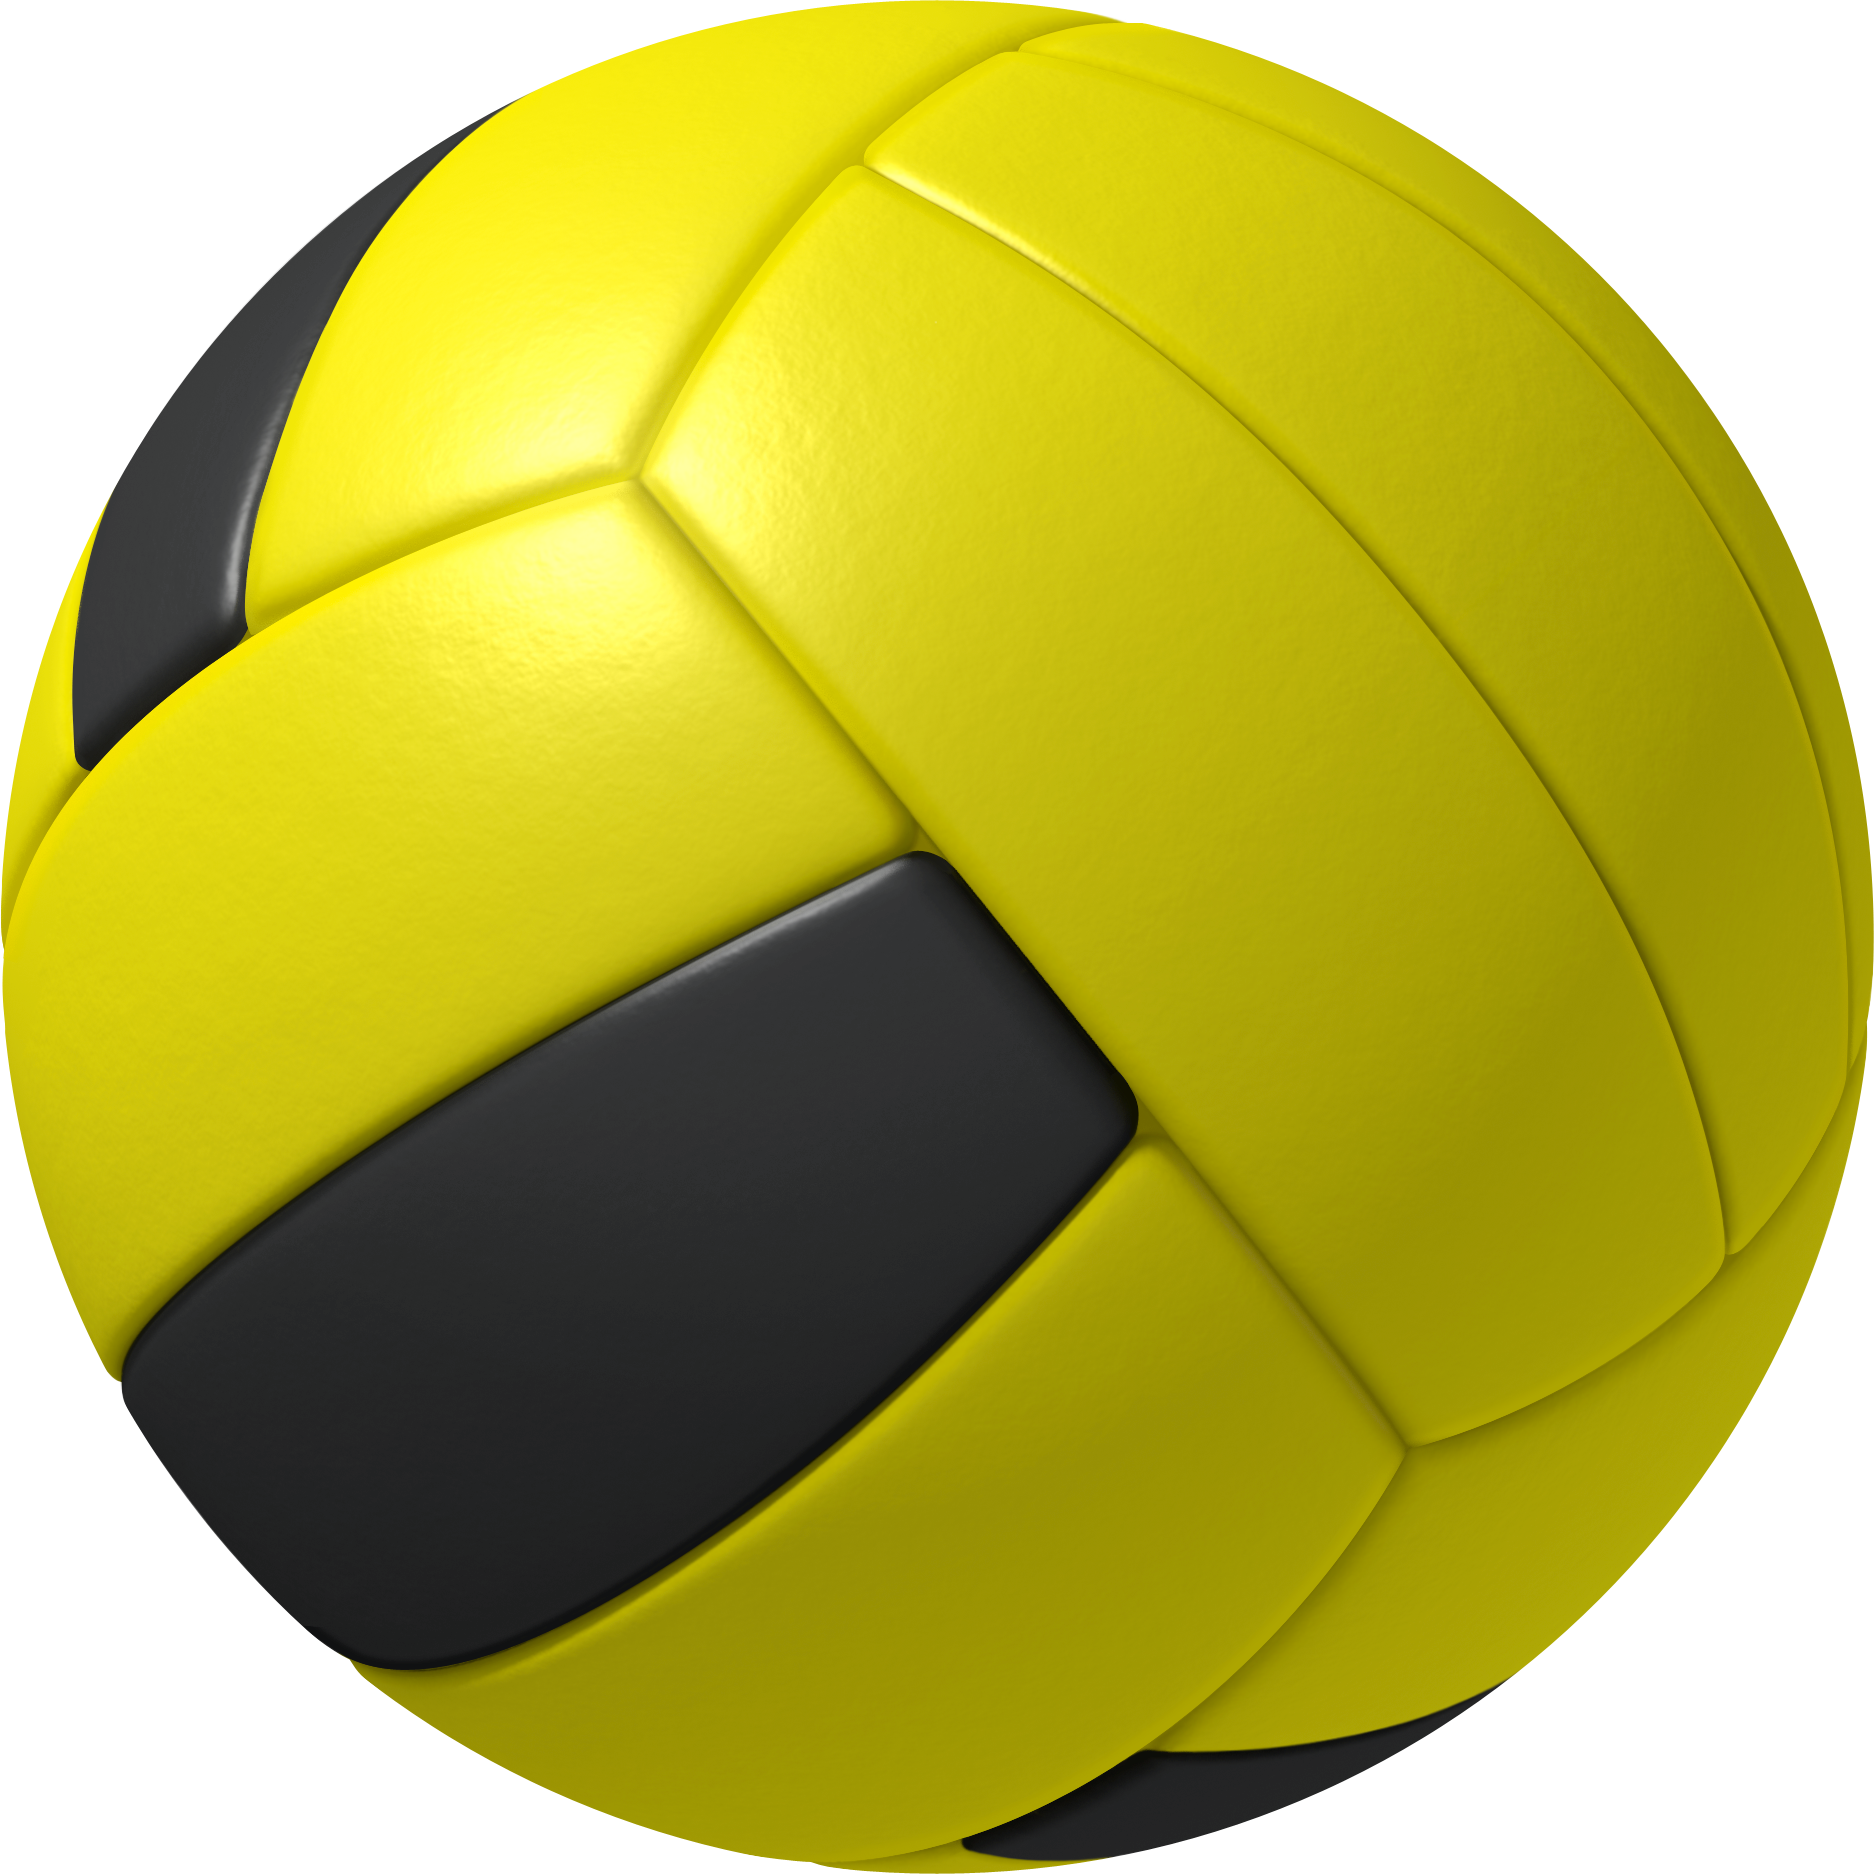 PNG Volleyball - 55966